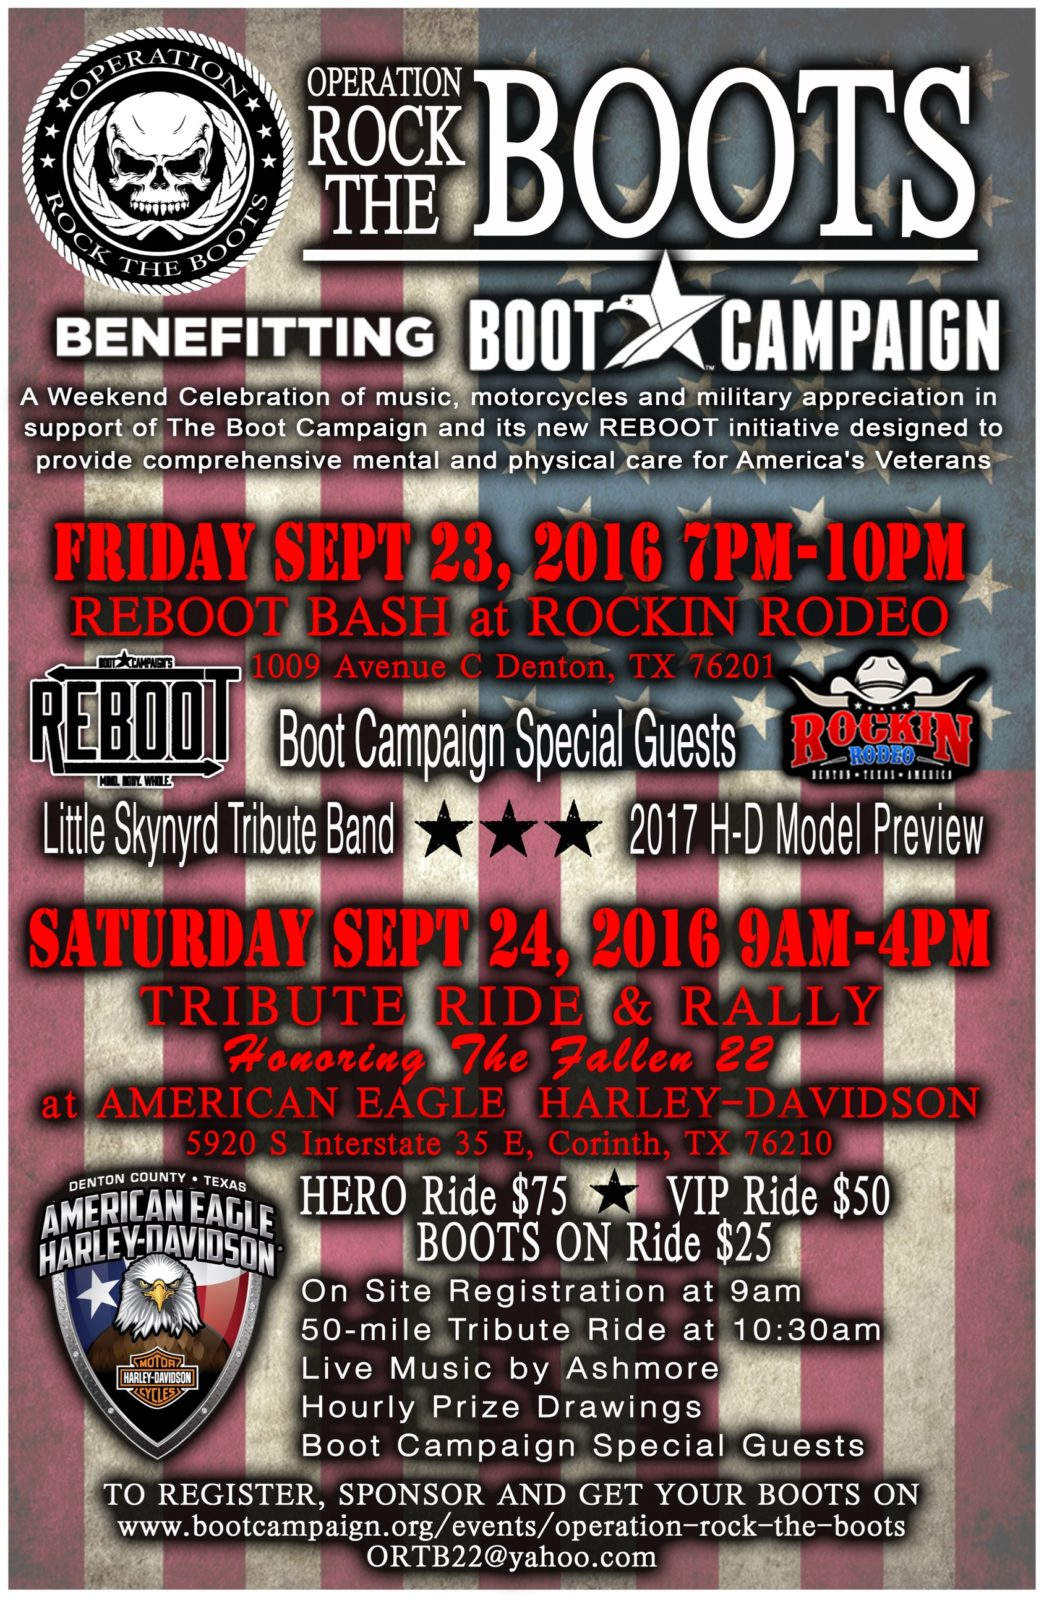 operation-rock-the-boots-tribute-ride-rally